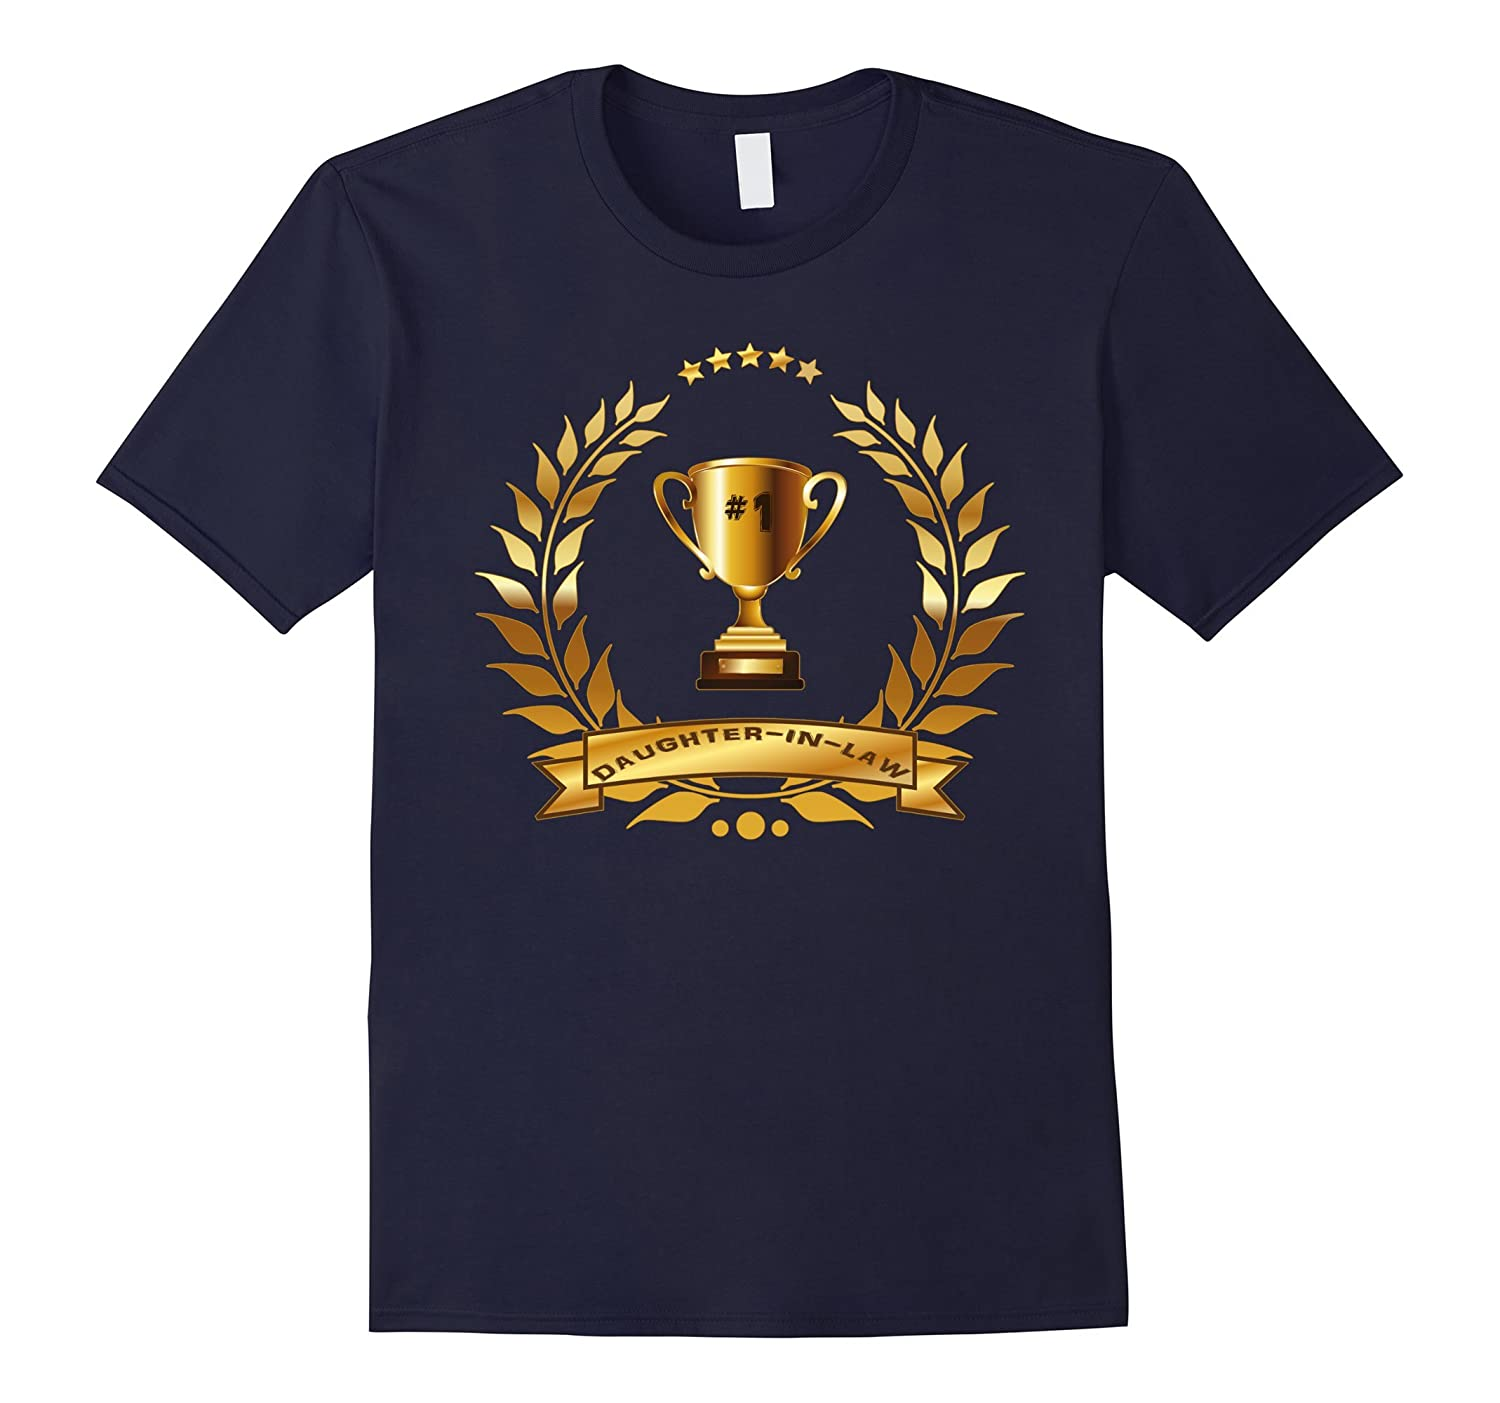 #1 Daughter-In-Law TShirt With Trophy-Gift For Women, Girls